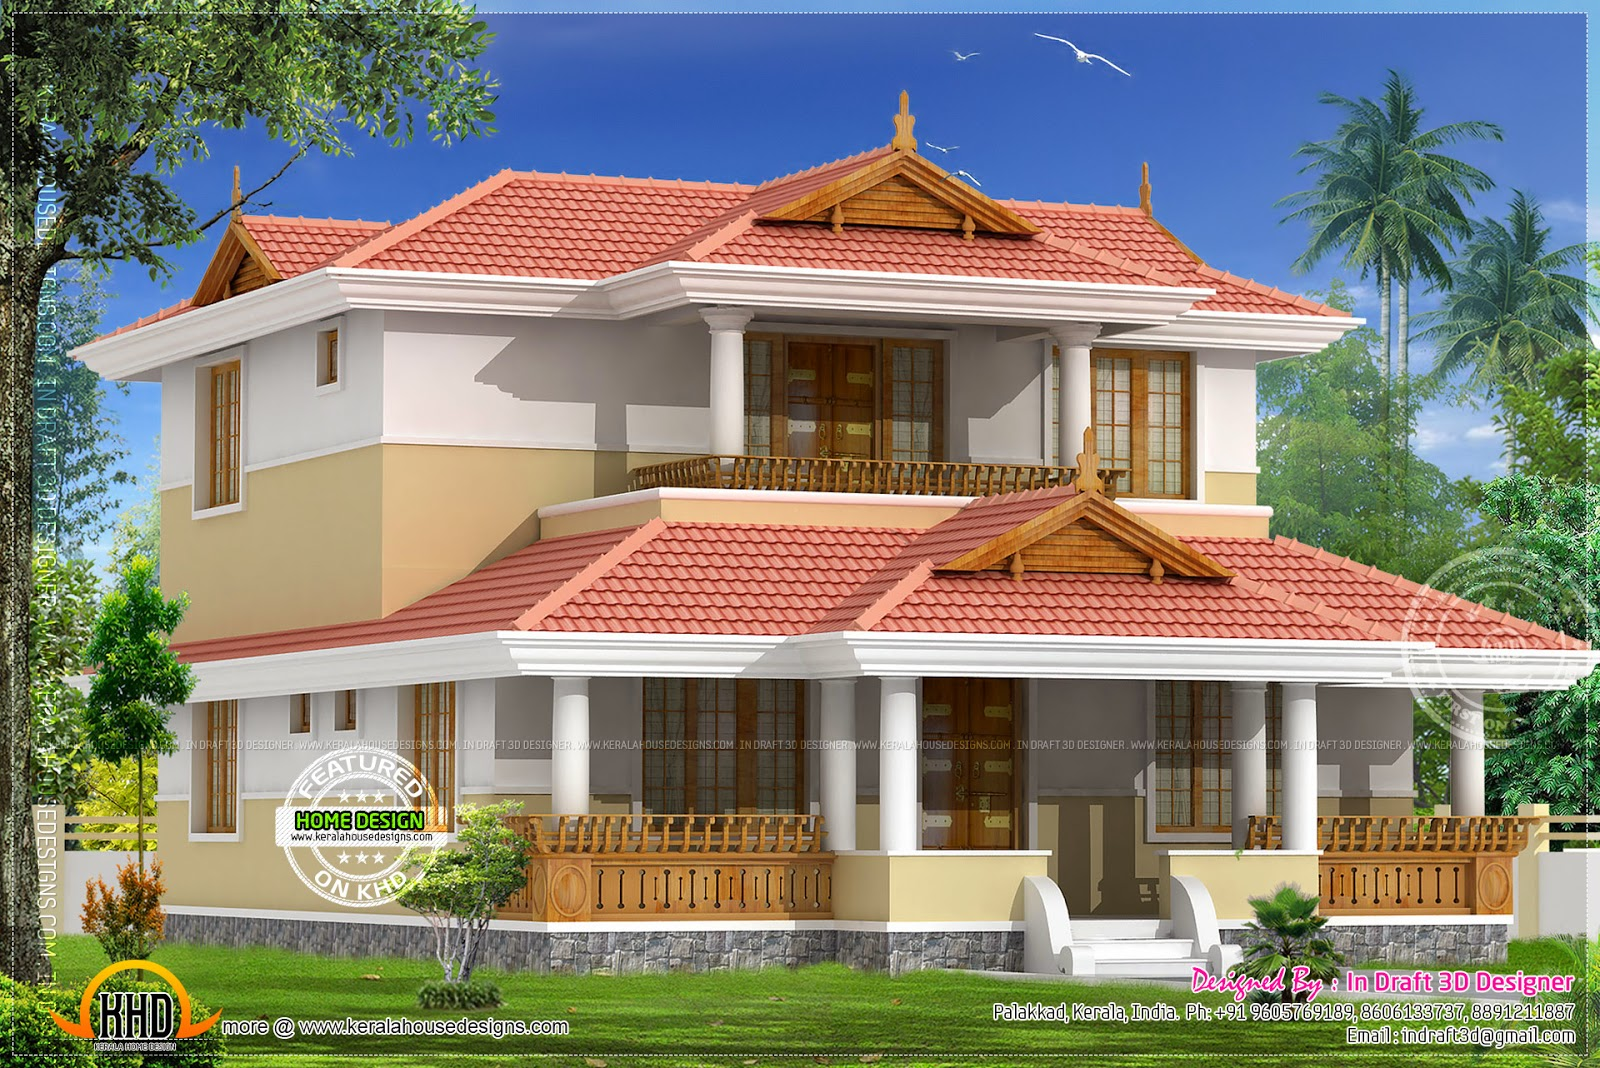 Western style house rendering keralahousedesigns for Western style houses